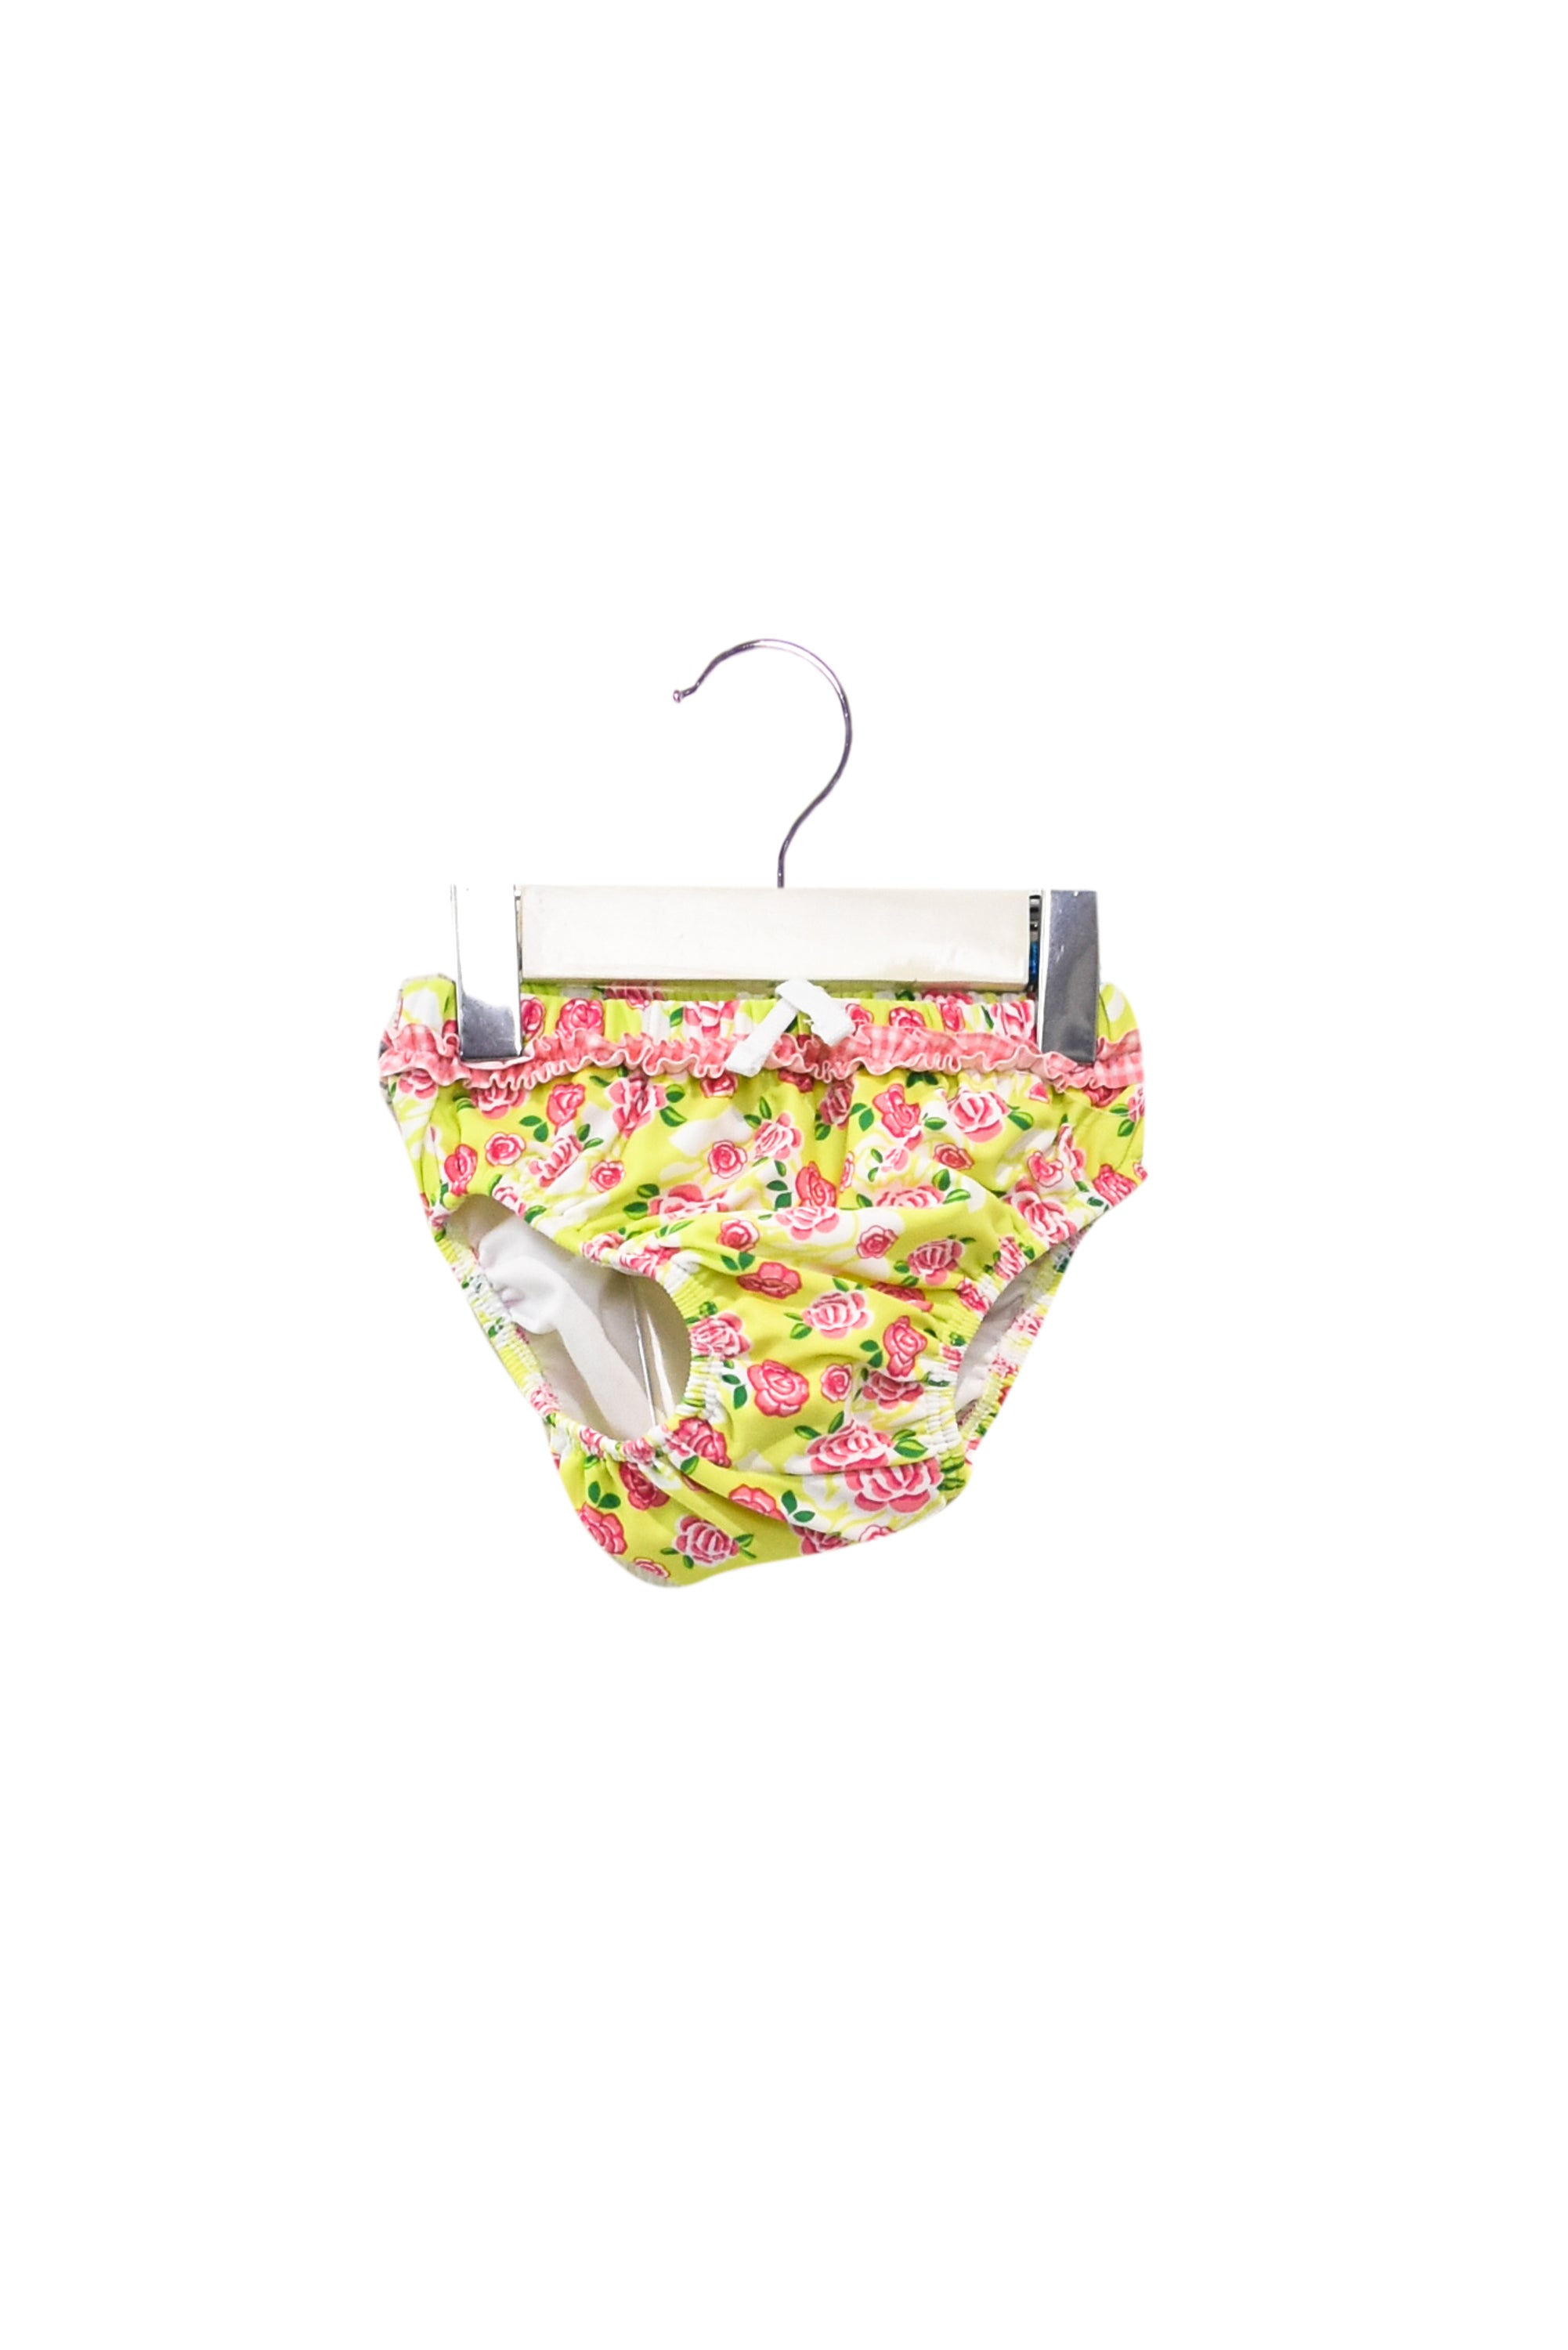 10028116 Playshoes Baby~Swim Bloomer 12-24M at Retykle